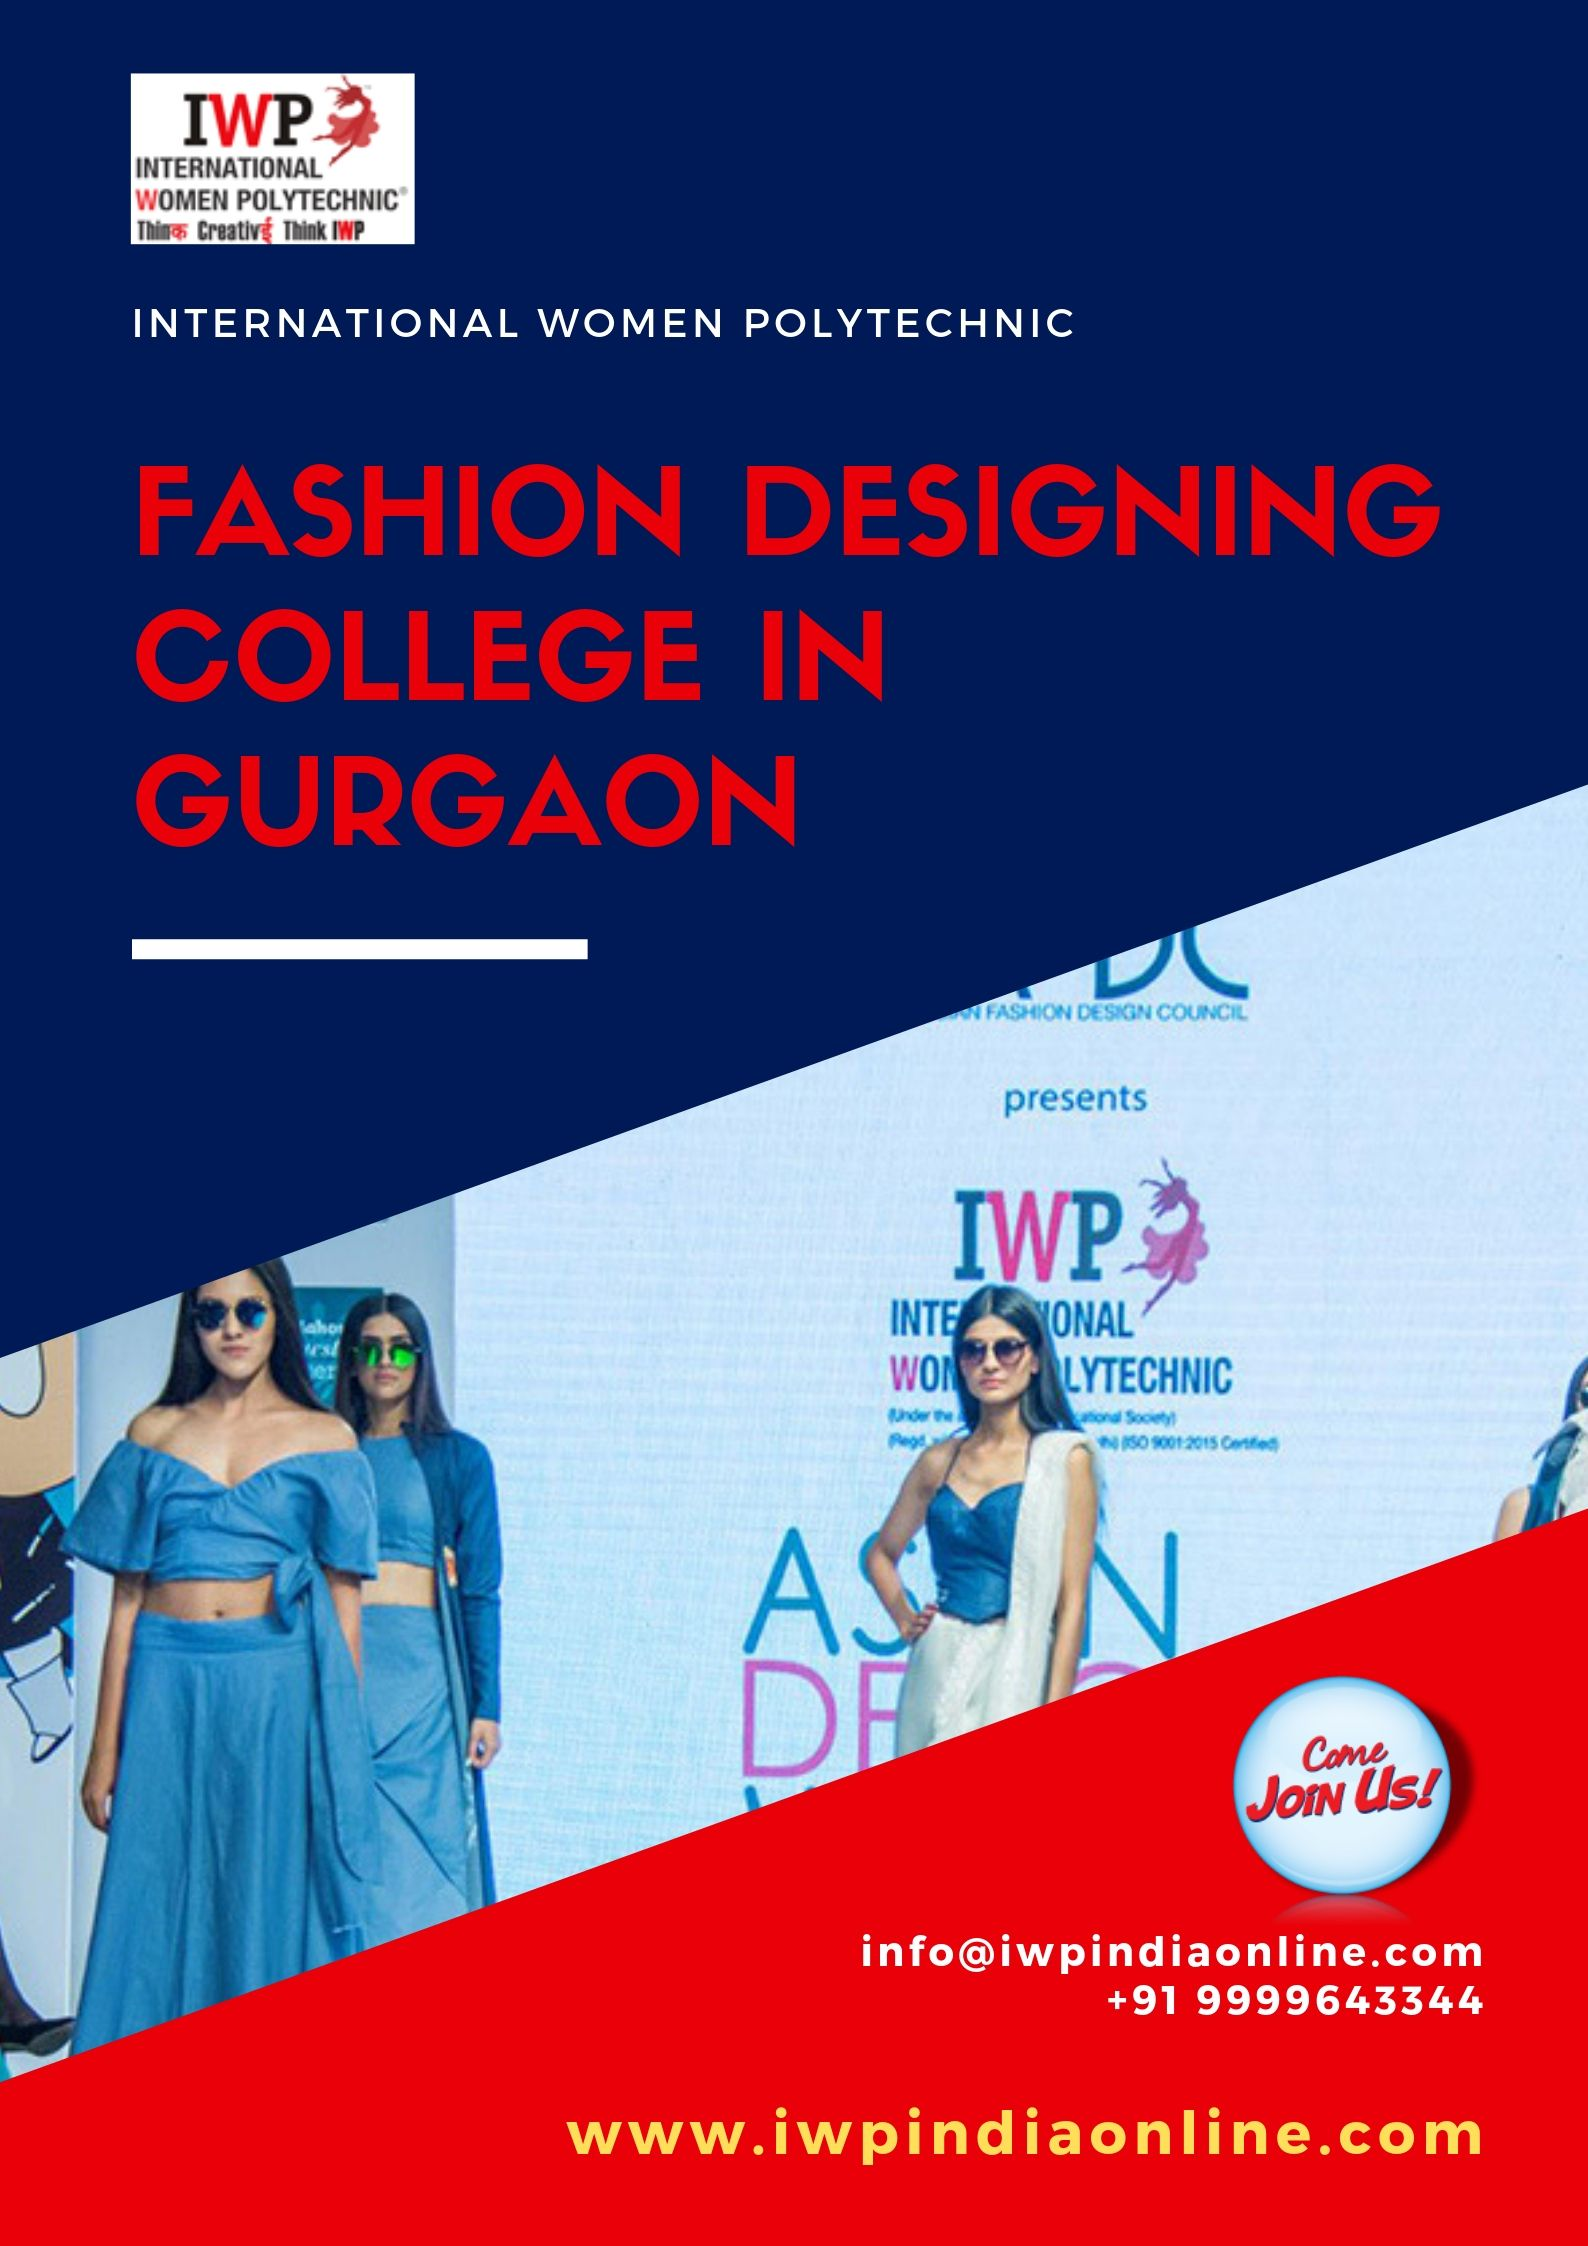 Fashion Designing Institute College In Gurgaon Iwp Fashion Classes Fees Fashion Designing Colleges Fashion Designing Institute Fashion Design